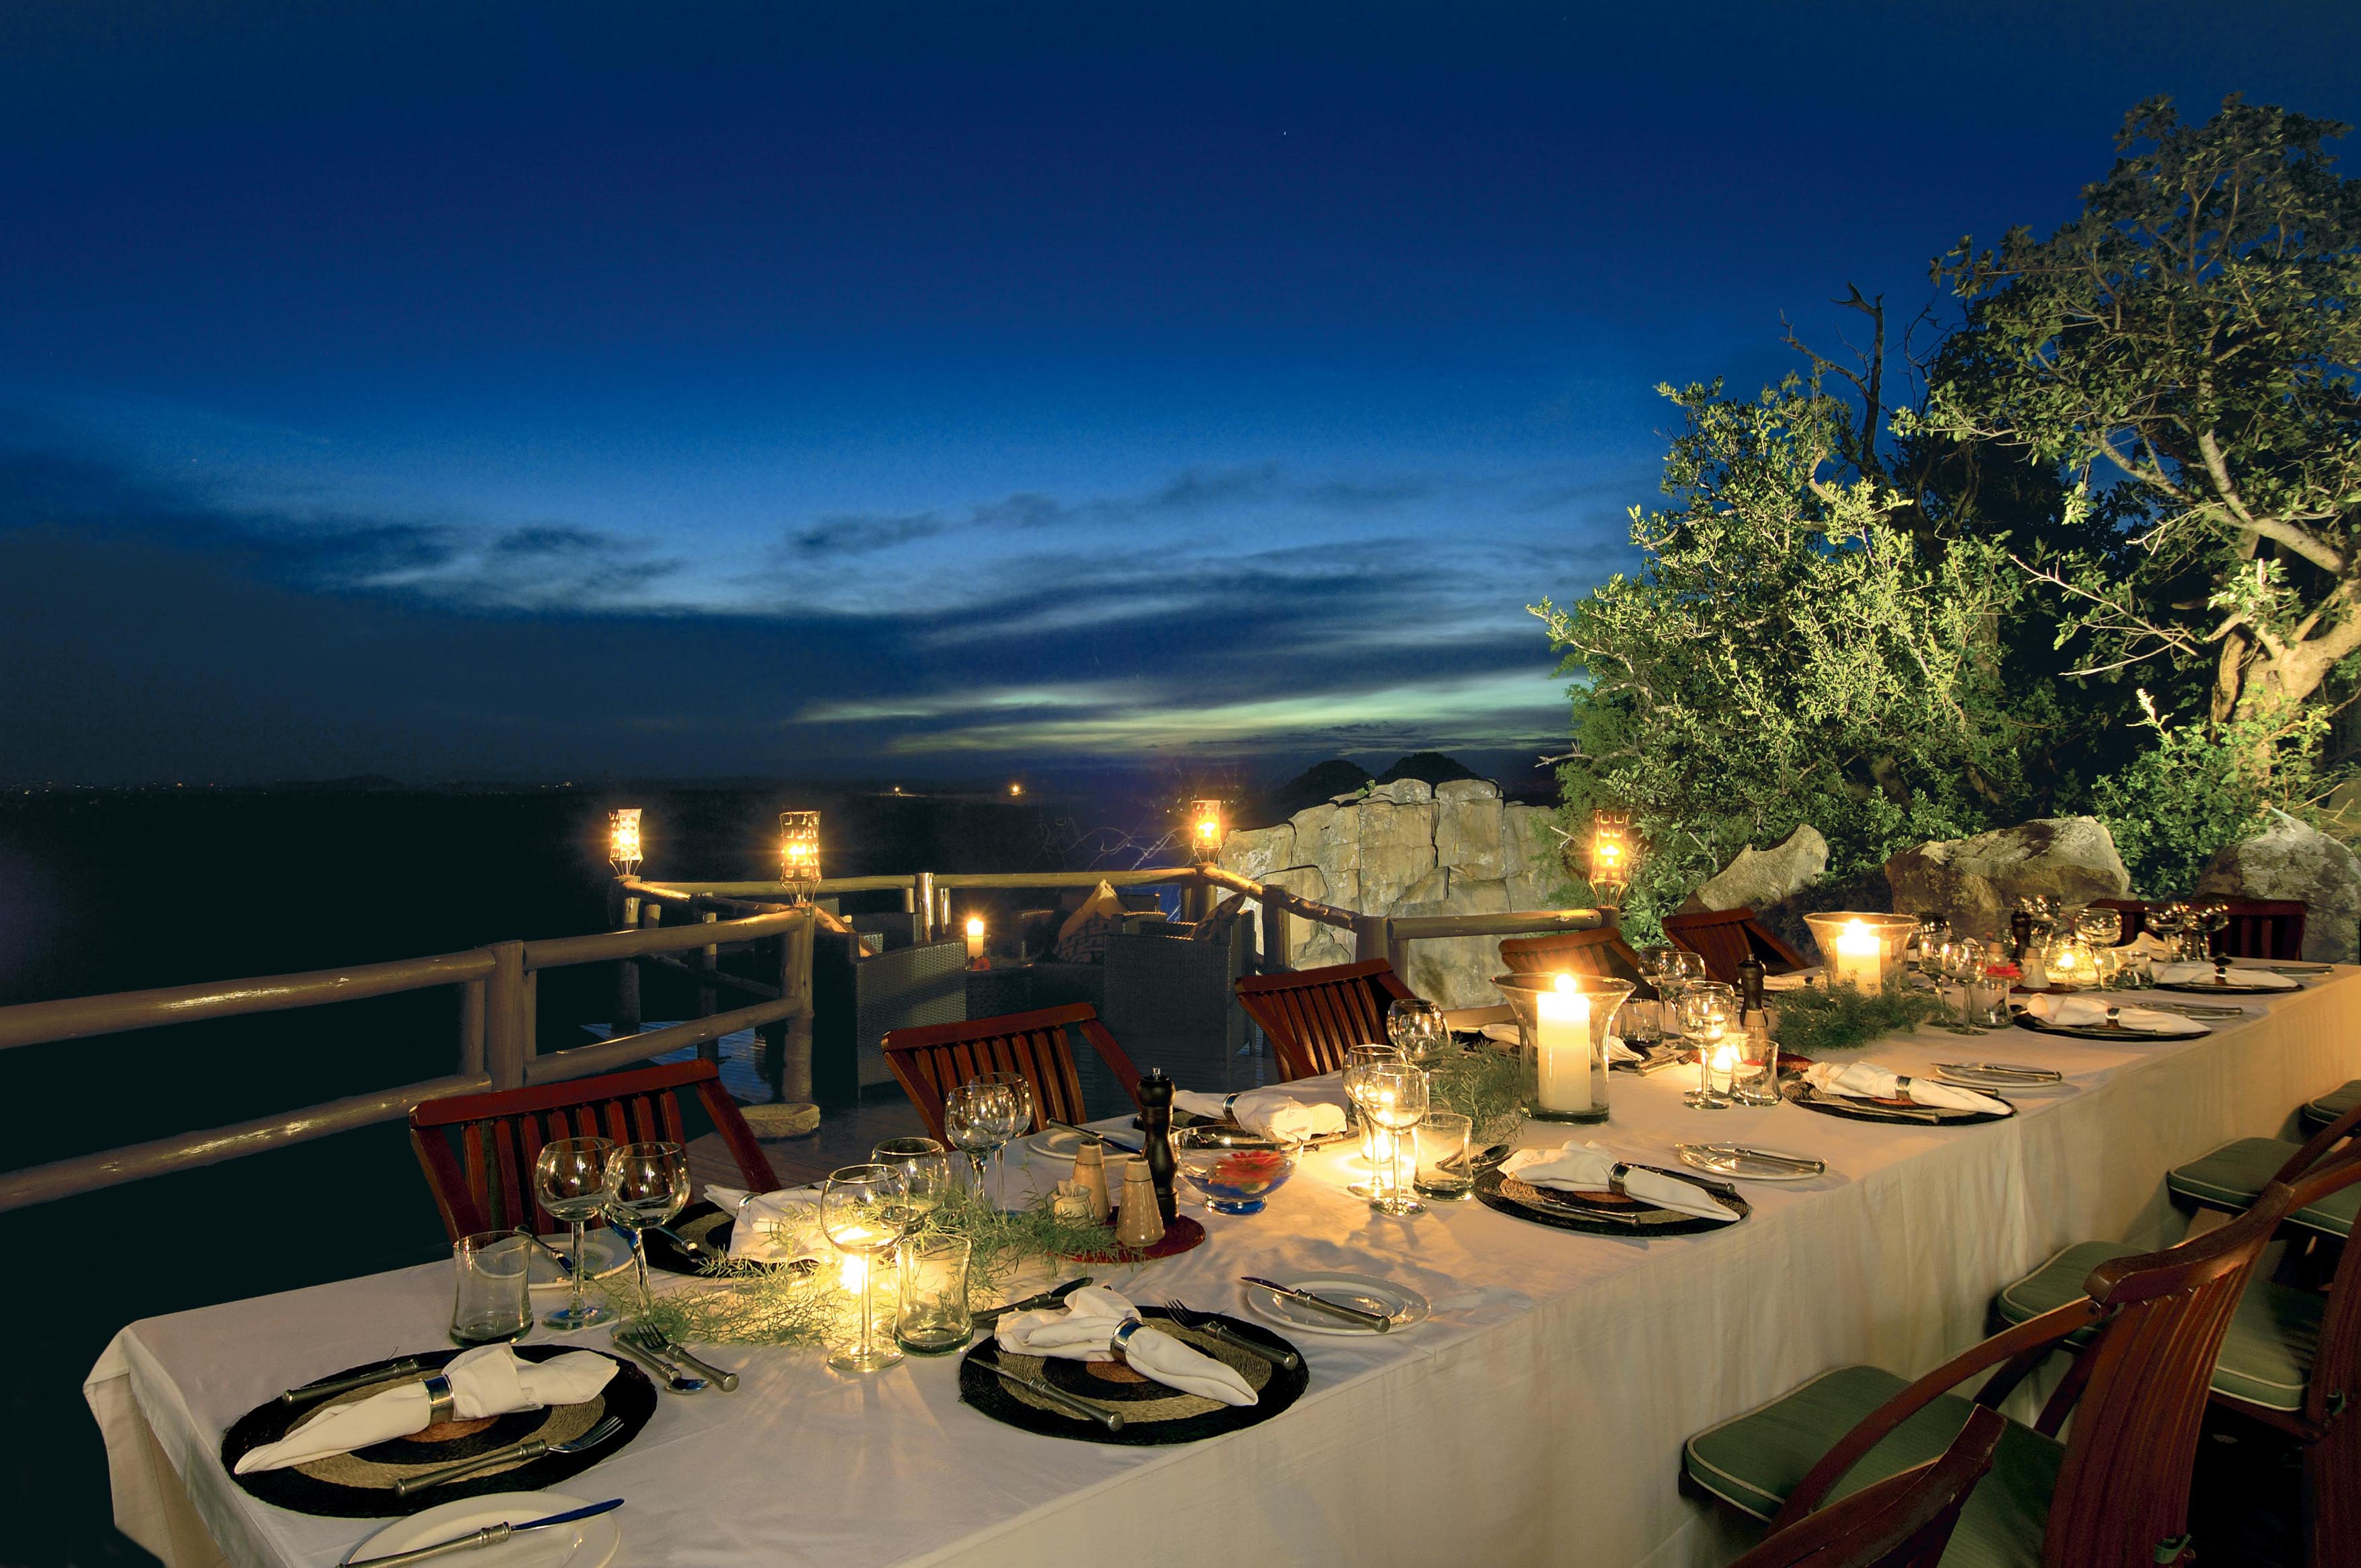 Beautiful Restaurants in South Africa hotels Luxury in Greece: amazing hotels to discover Beautiful Restaurants in South Africa hotels Luxury in Greece: amazing hotels to discover Beautiful Restaurants in South Africa